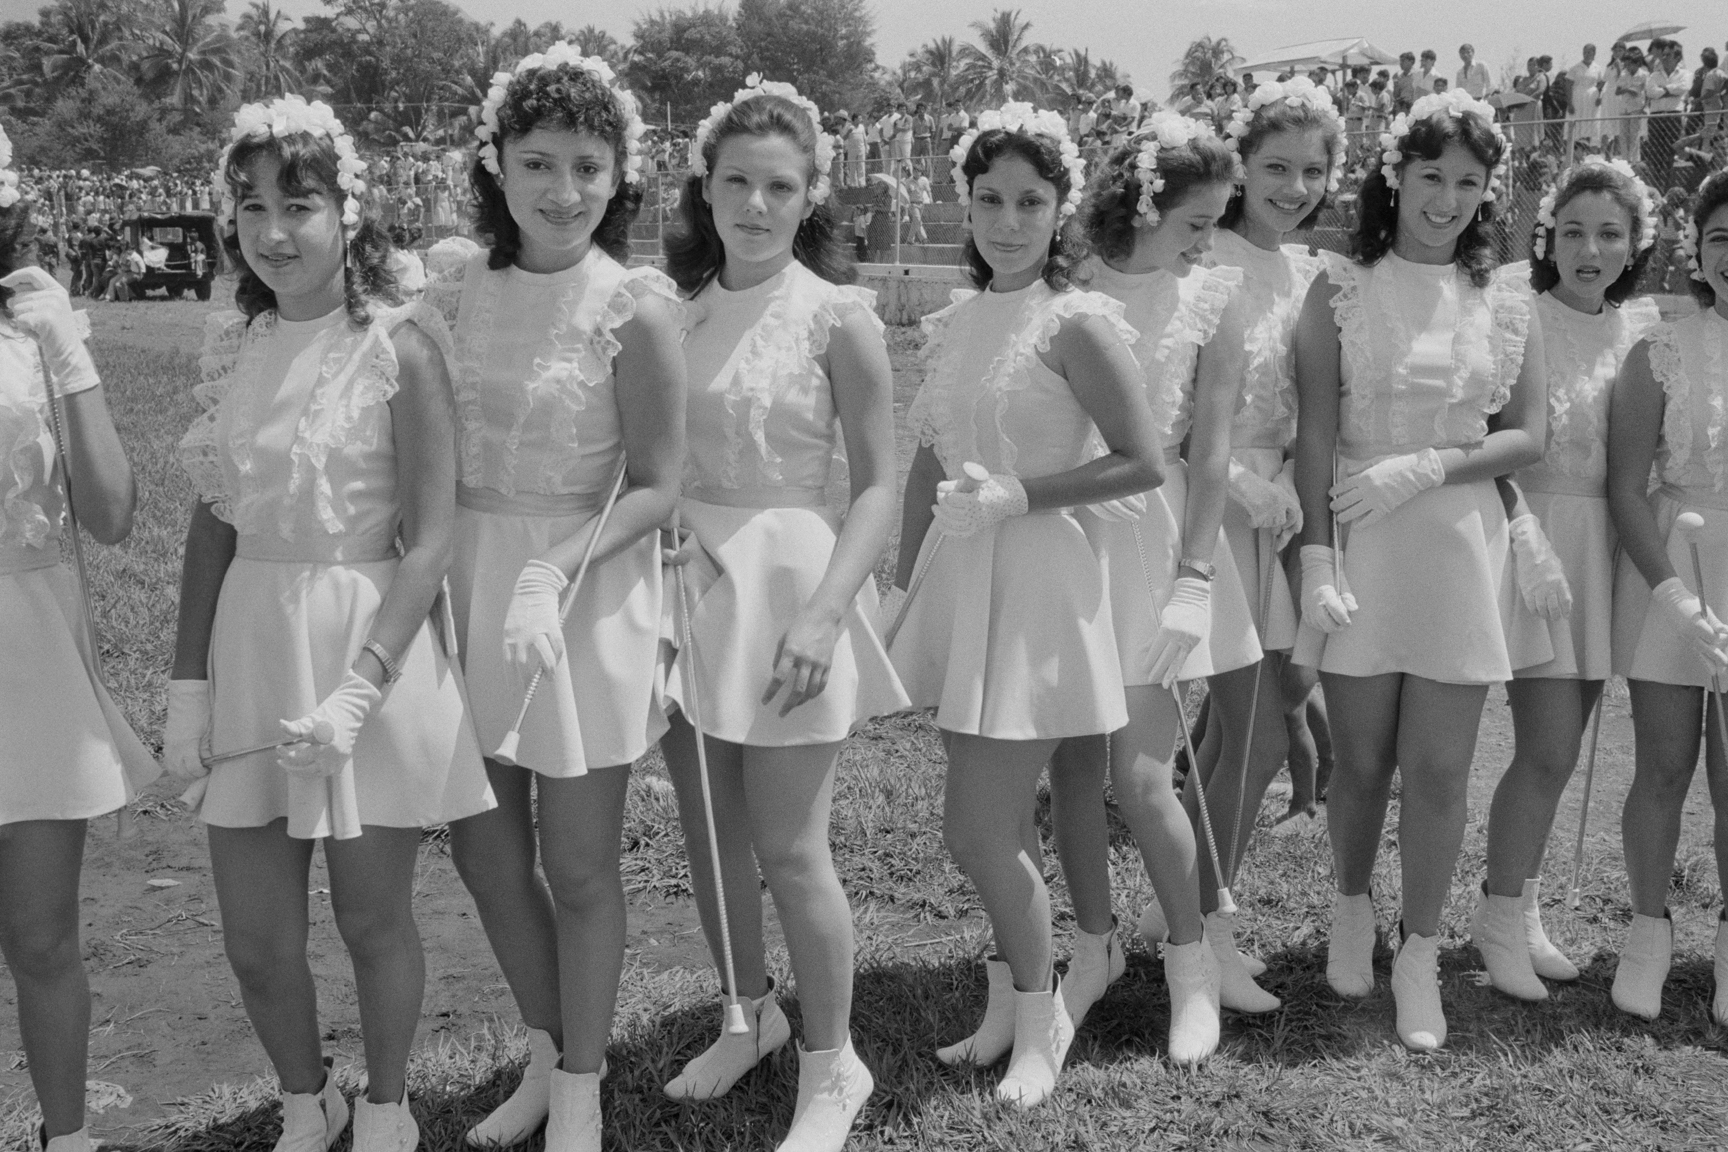 Marching band majorettes line up before a military parade for graduating army cadets October 1982 in Santa Tecla, El Salvador.